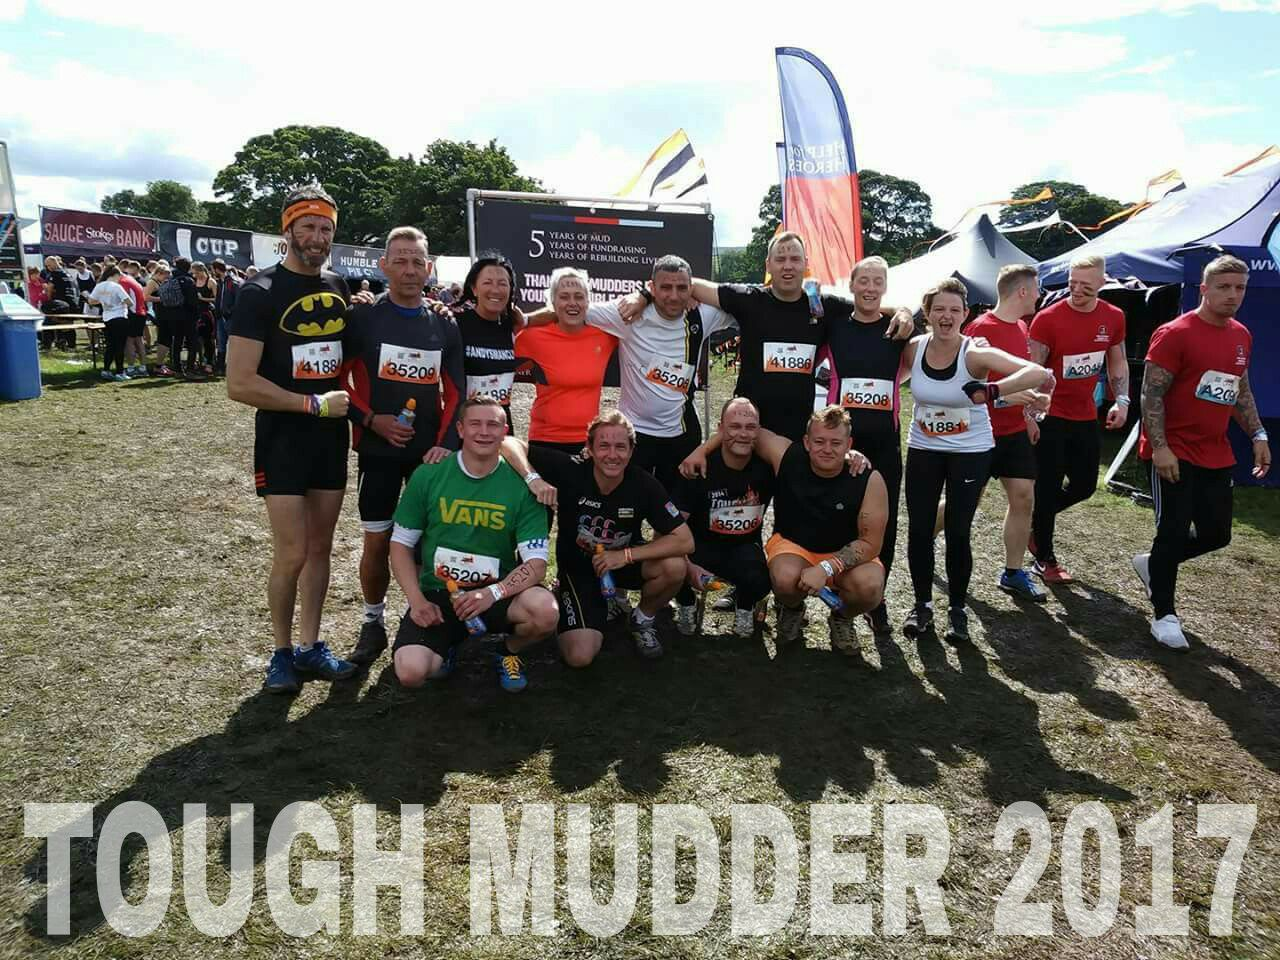 calderdale in recovery - tough mudder participants